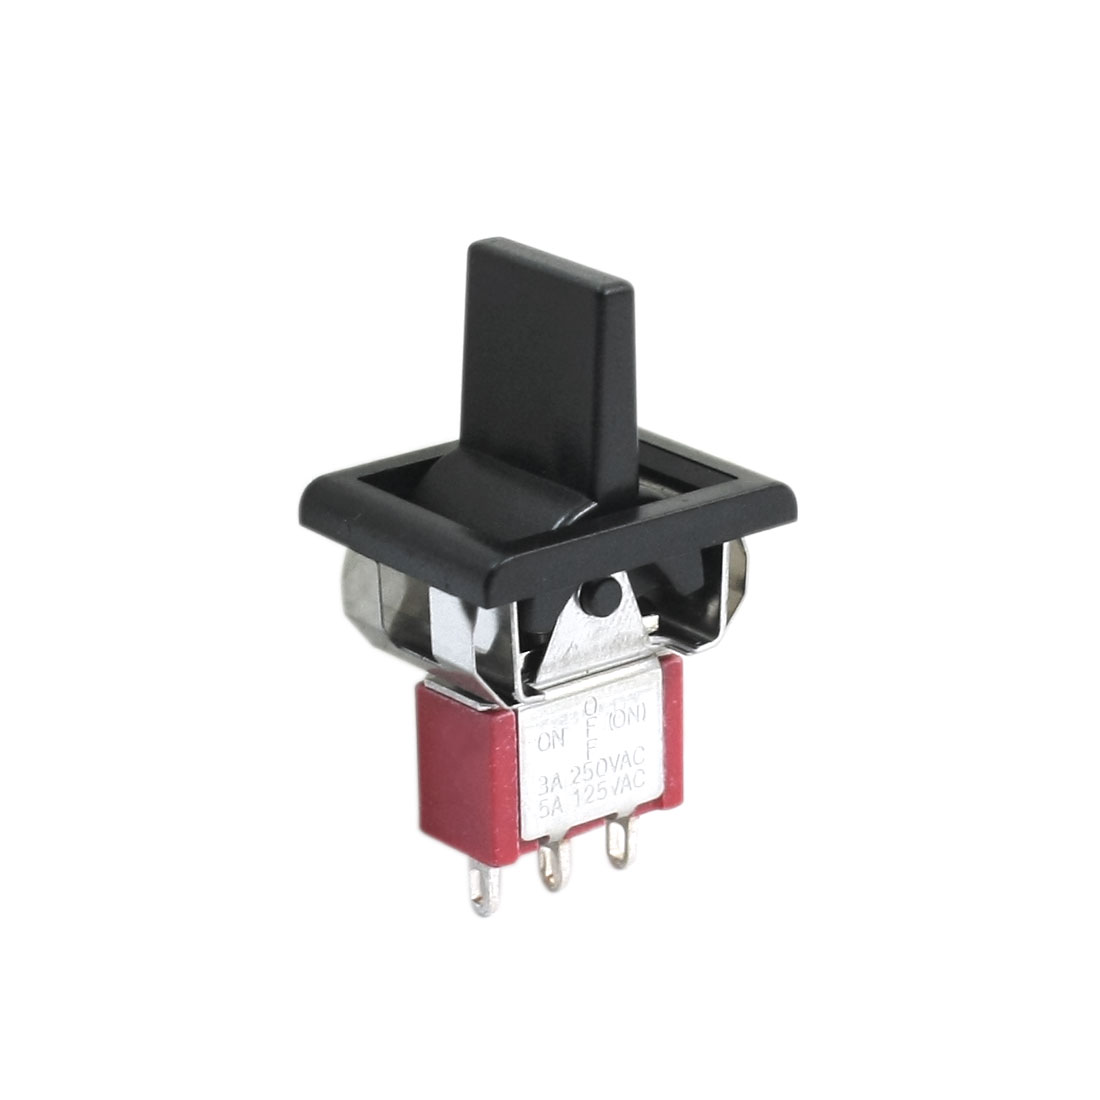 AC 250V/3A 125V/5A Latching Momentary SPDT 3 Positions Toggle Switch